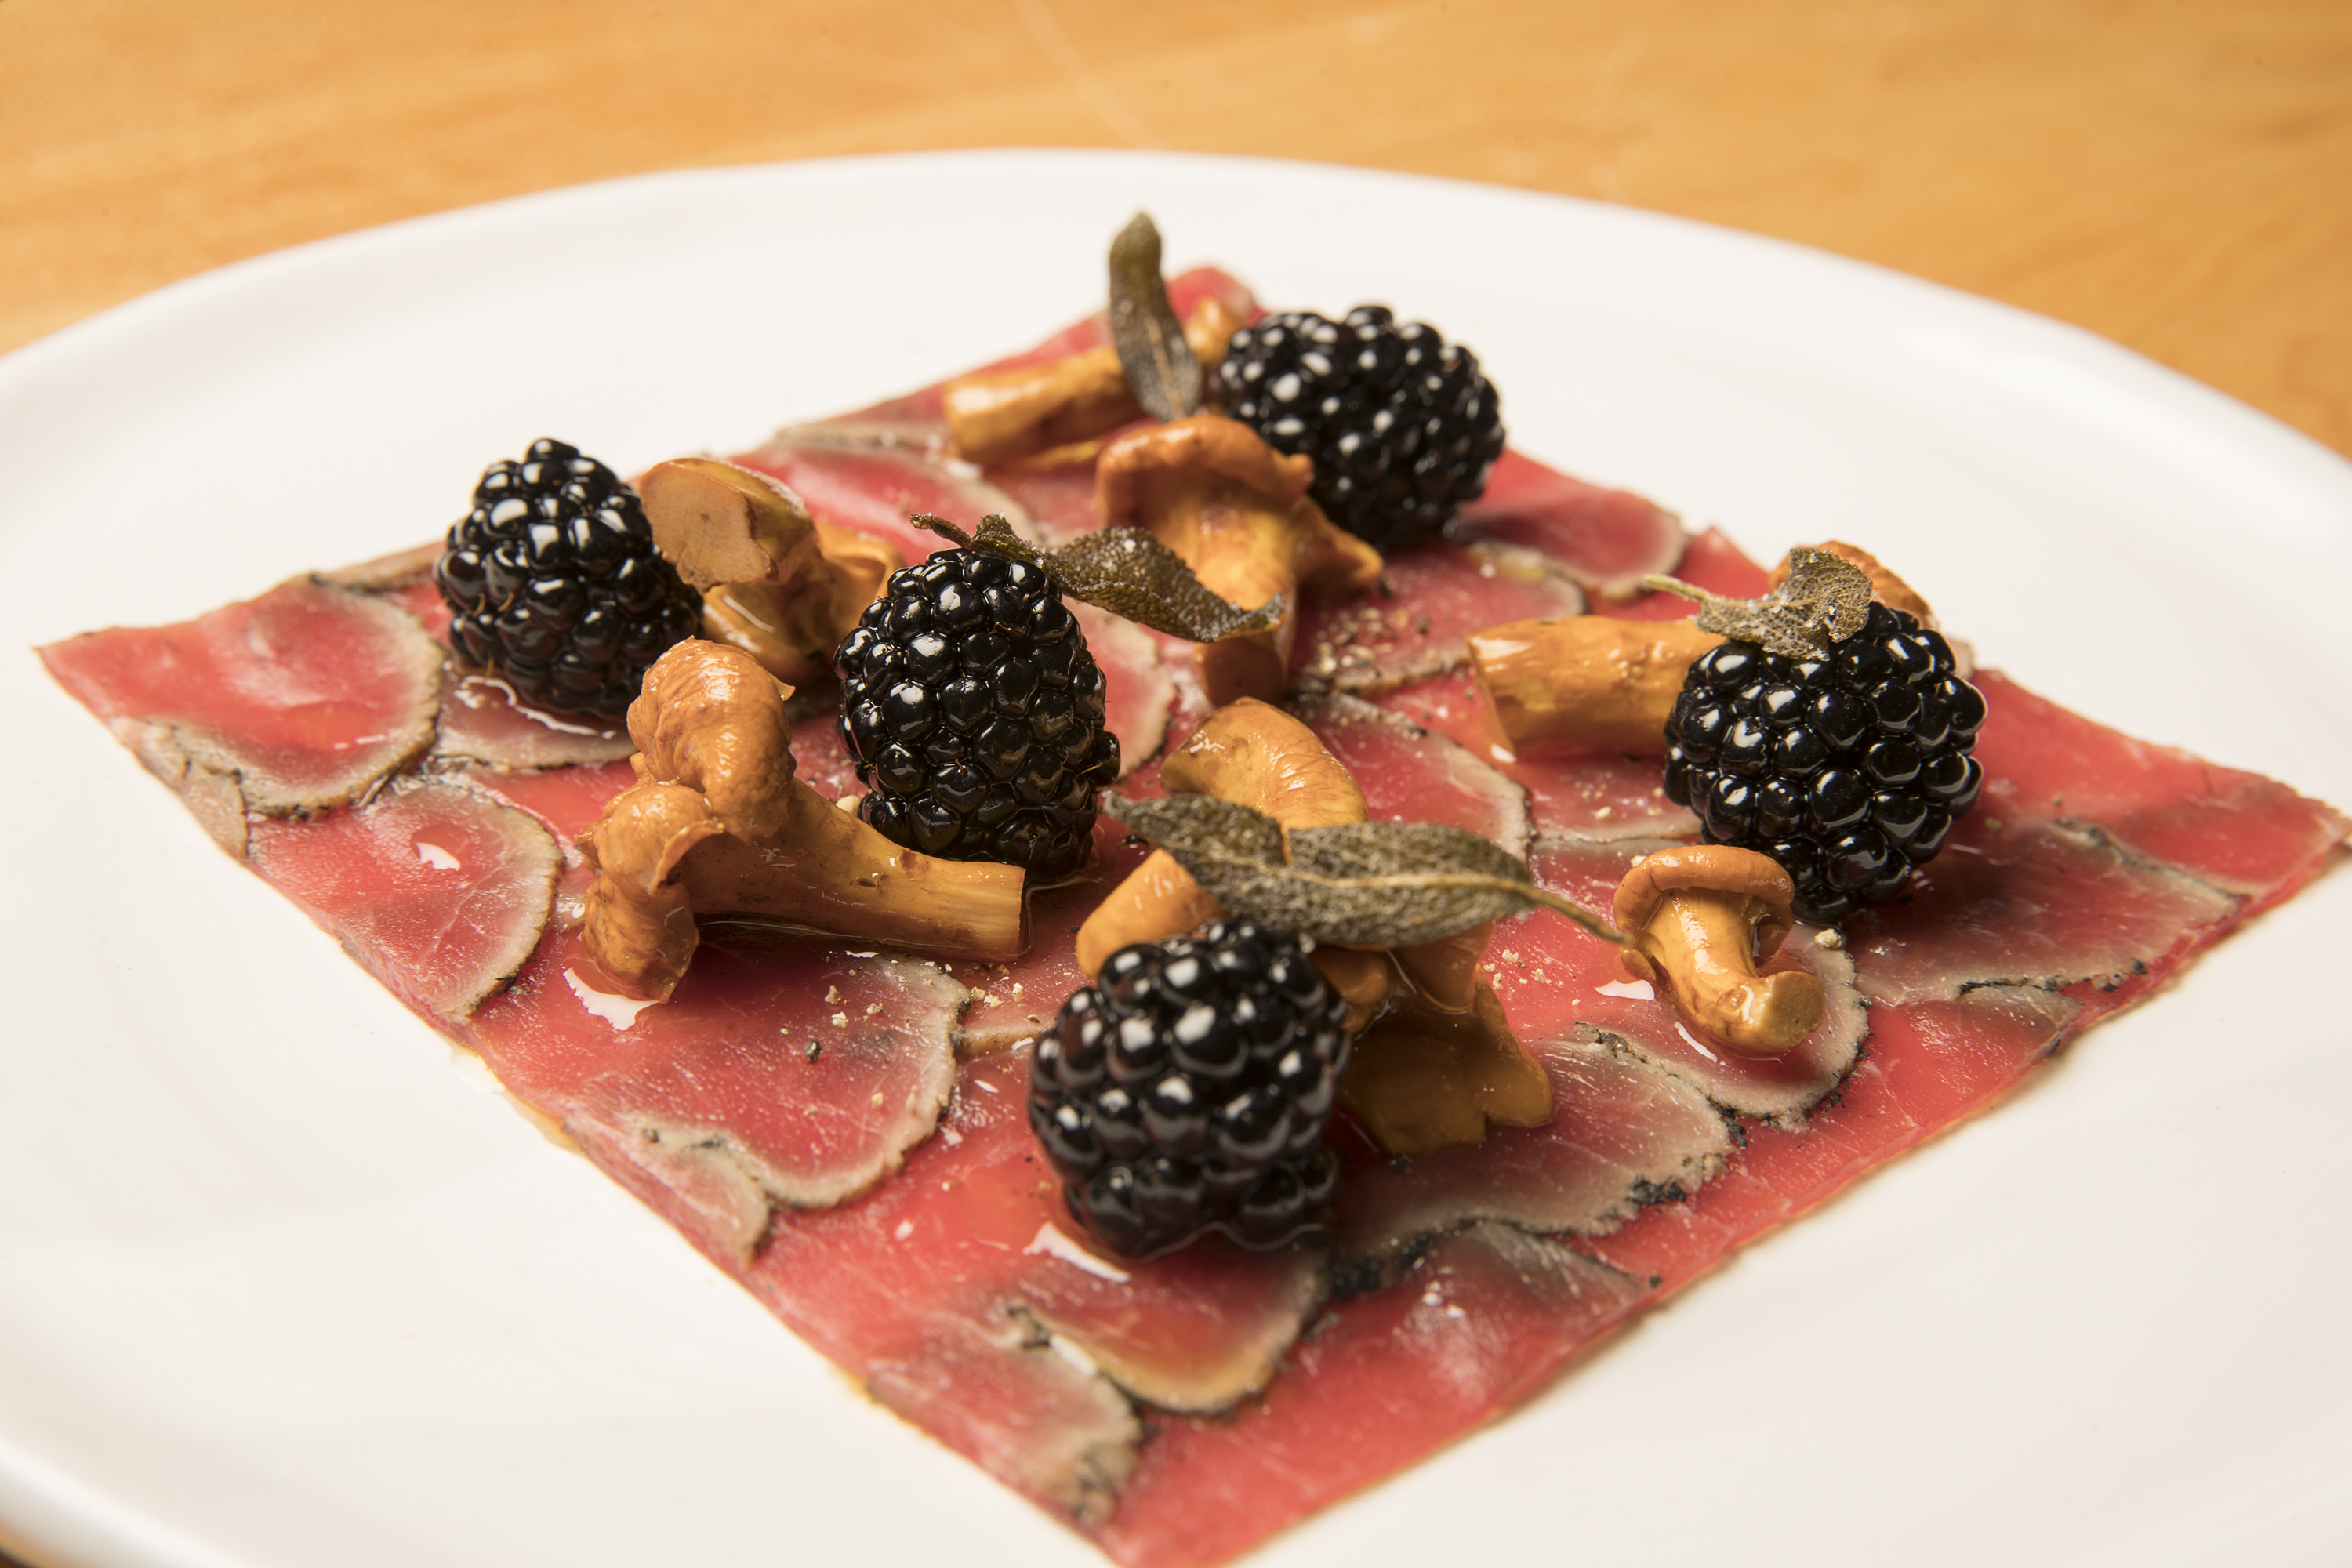 Veal carpaccio served with blackberries and chanterelles under oil at Andiario in West Chester.